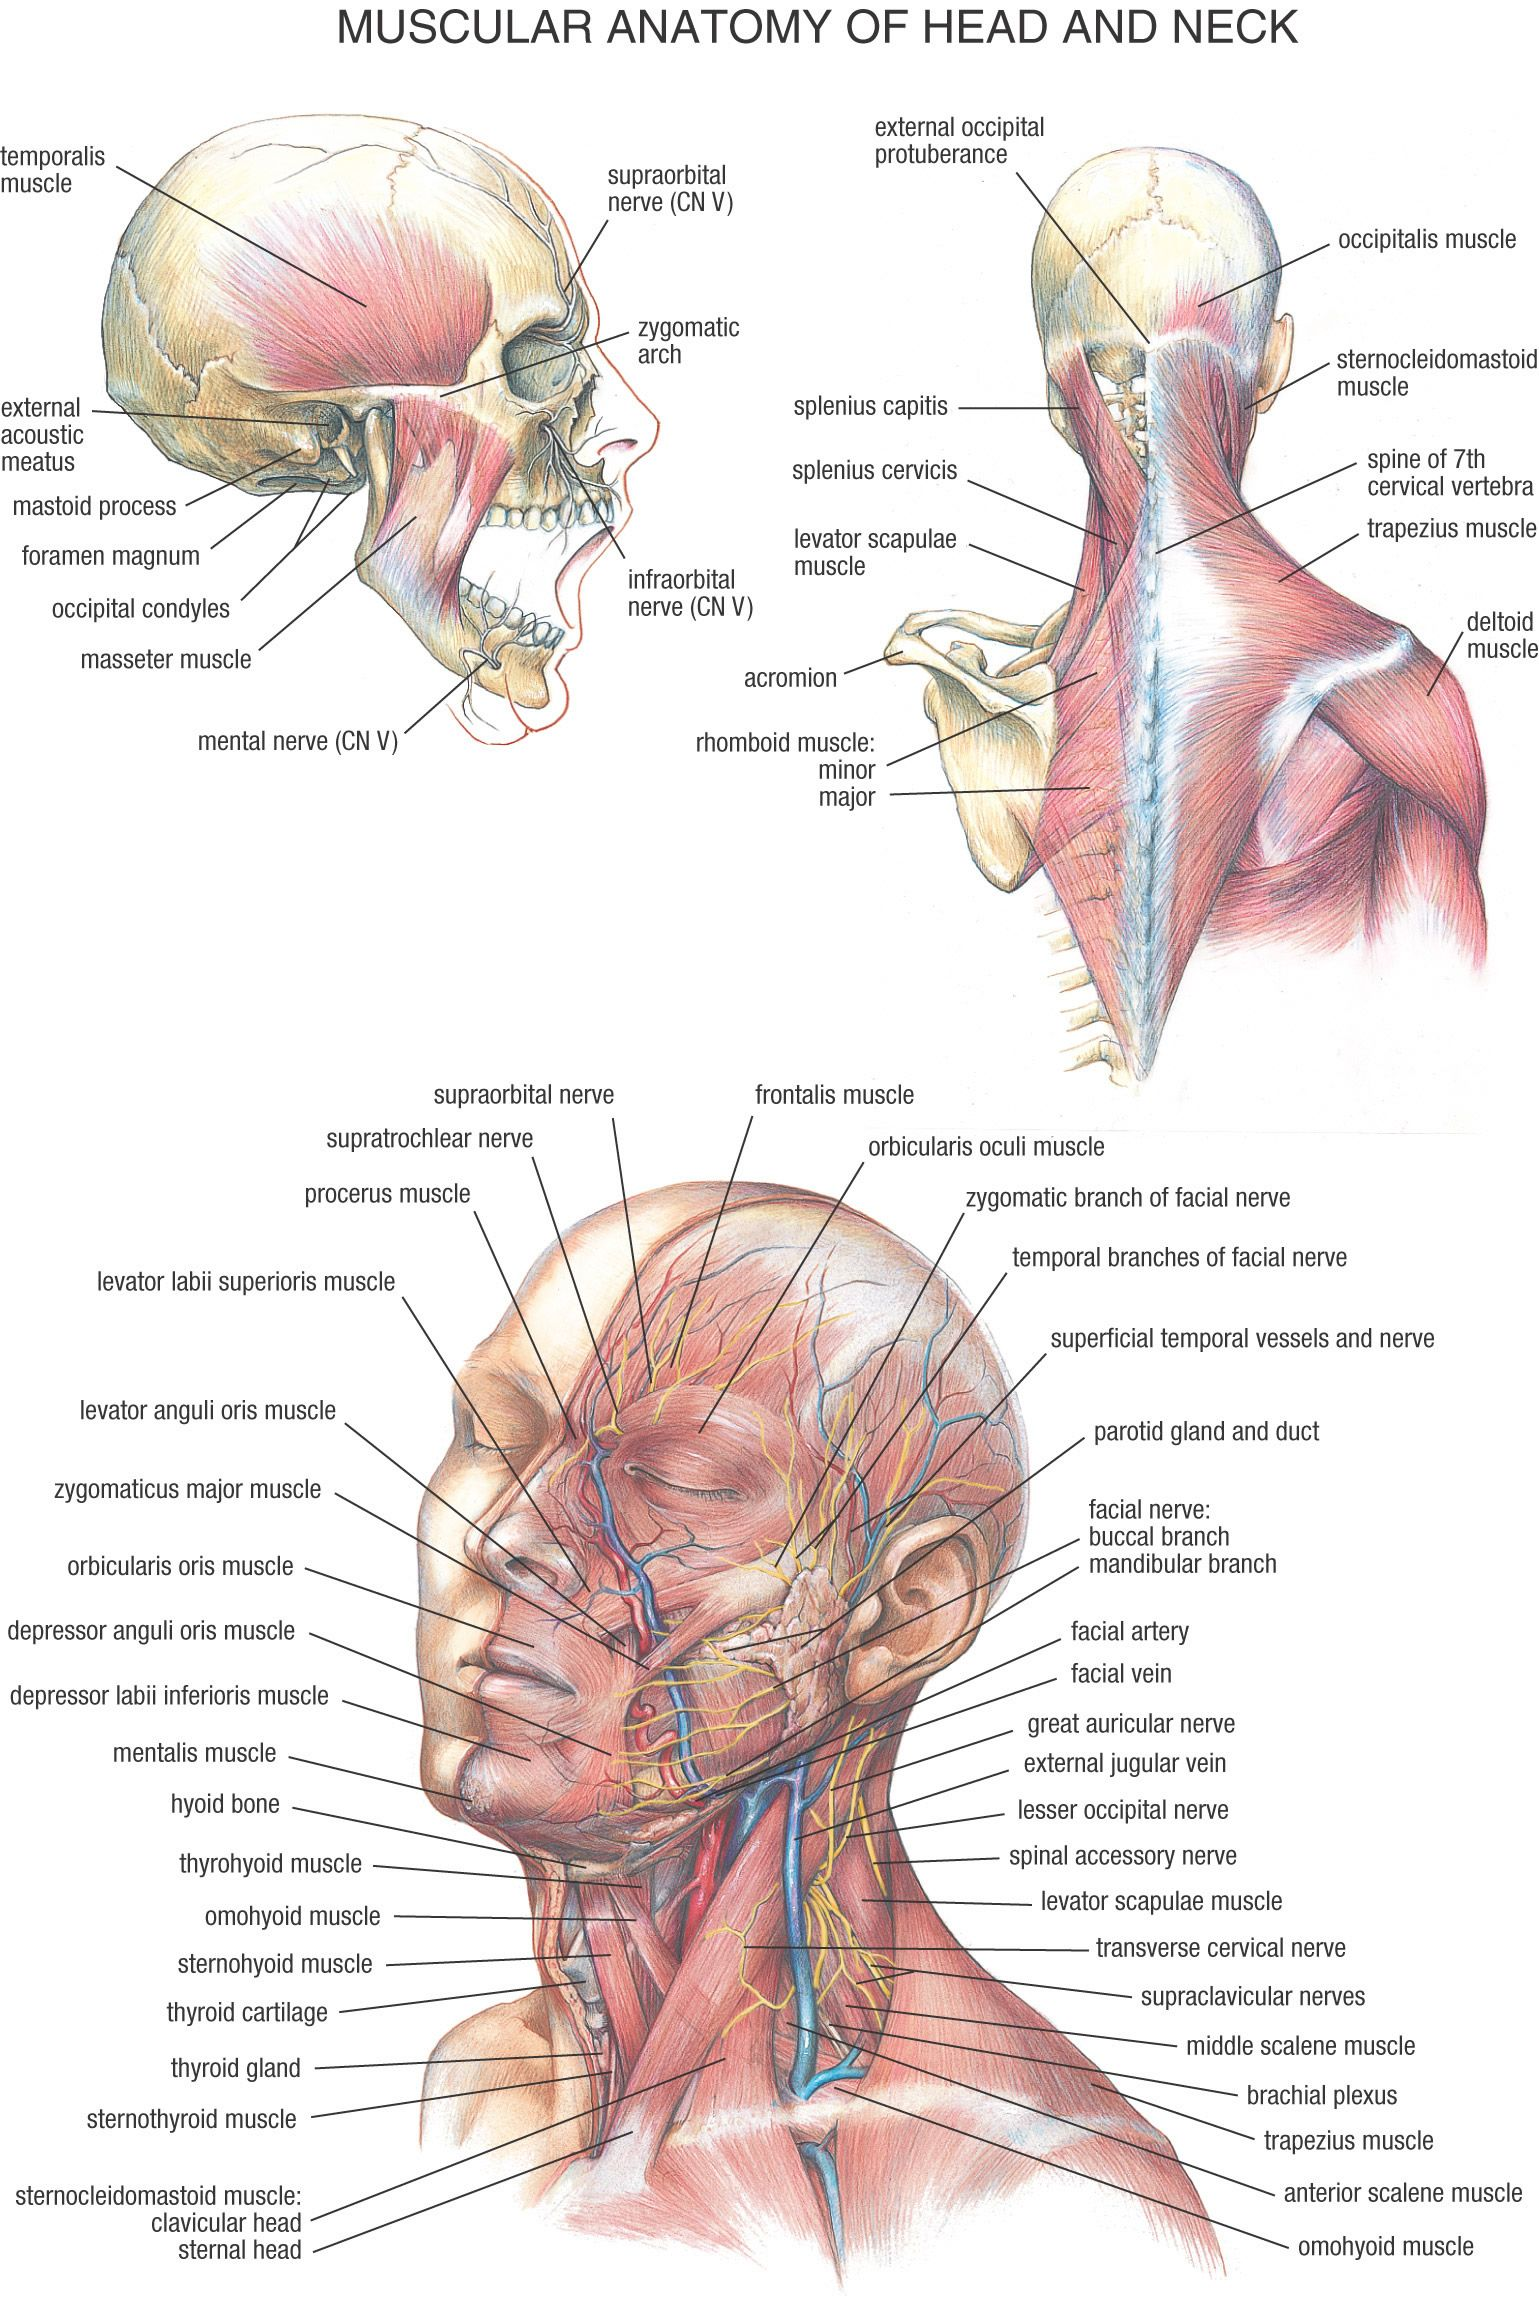 neck muscles anatomy - Google Search | dental studies | Pinterest ...